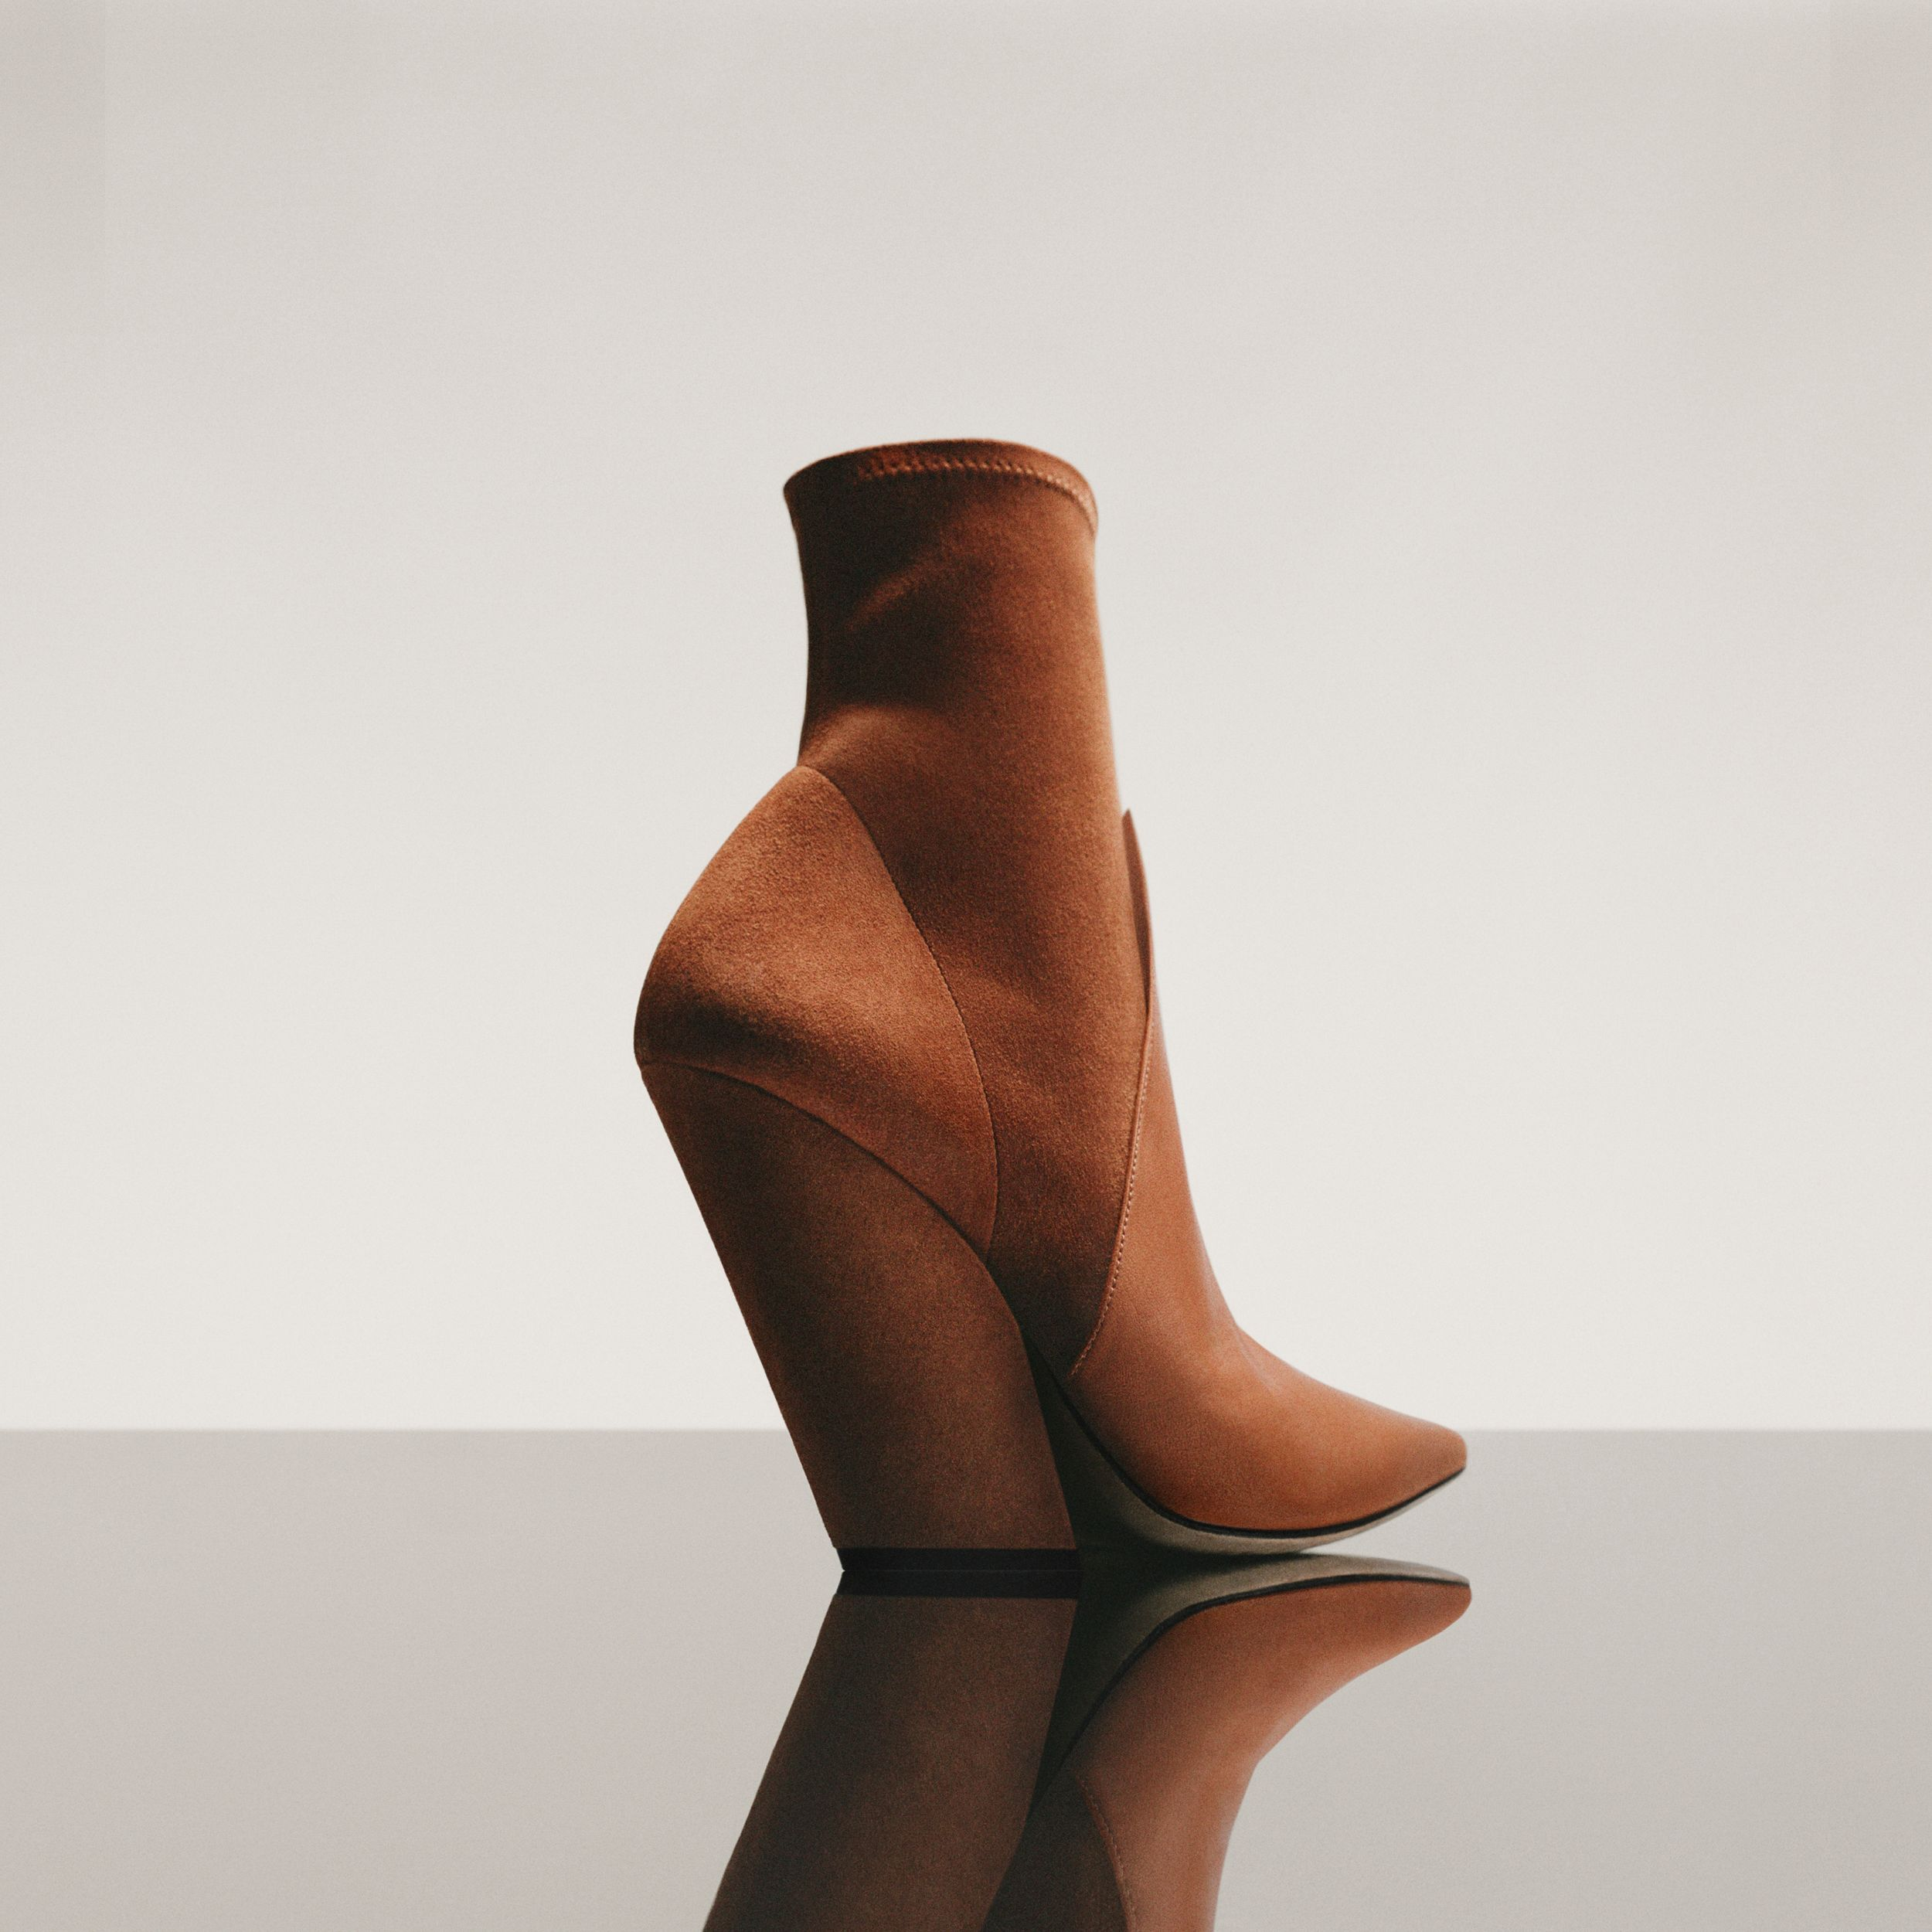 Panelled Suede and Lambskin Ankle Boots in Nutmeg - Women | Burberry United Kingdom - 2